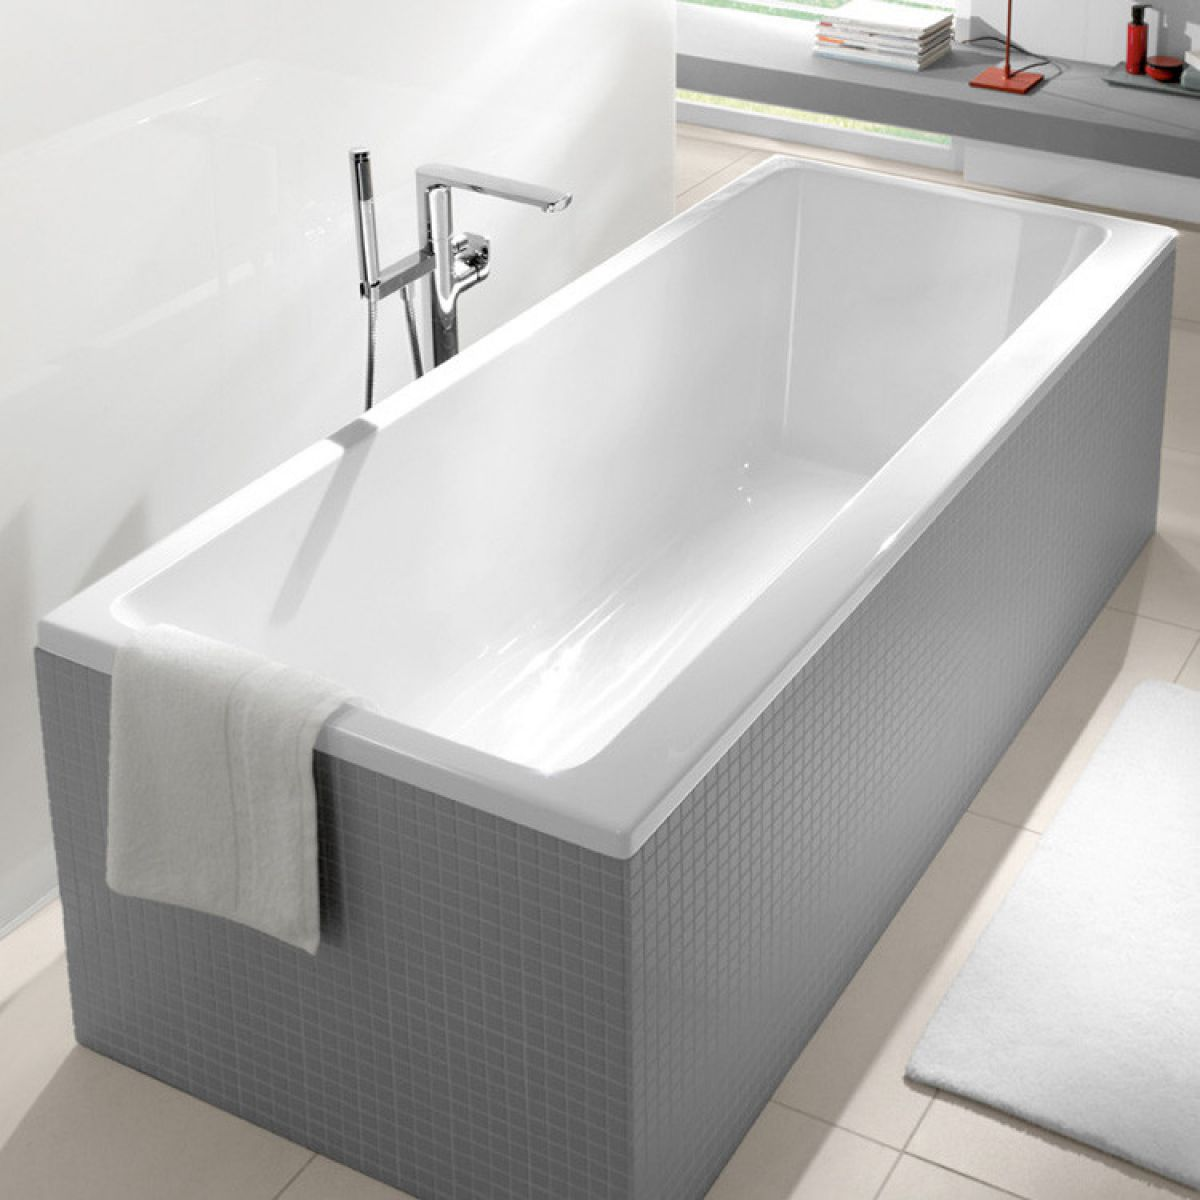 villeroy and boch subway duo rectangular bath uk bathrooms. Black Bedroom Furniture Sets. Home Design Ideas